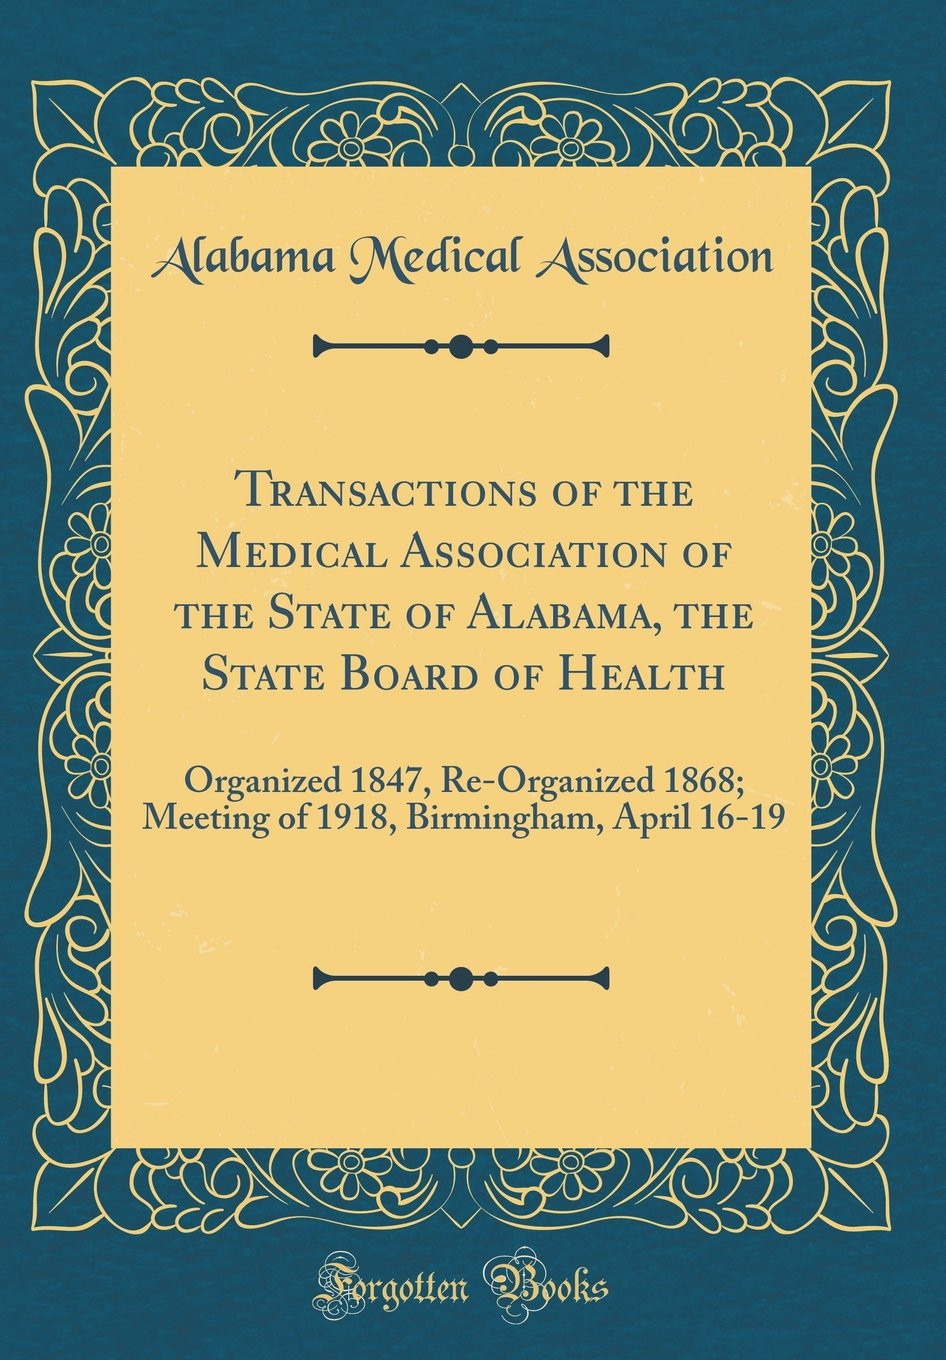 Download Transactions of the Medical Association of the State of Alabama, the State Board of Health: Organized 1847, Re-Organized 1868; Meeting of 1918, Birmingham, April 16-19 (Classic Reprint) PDF